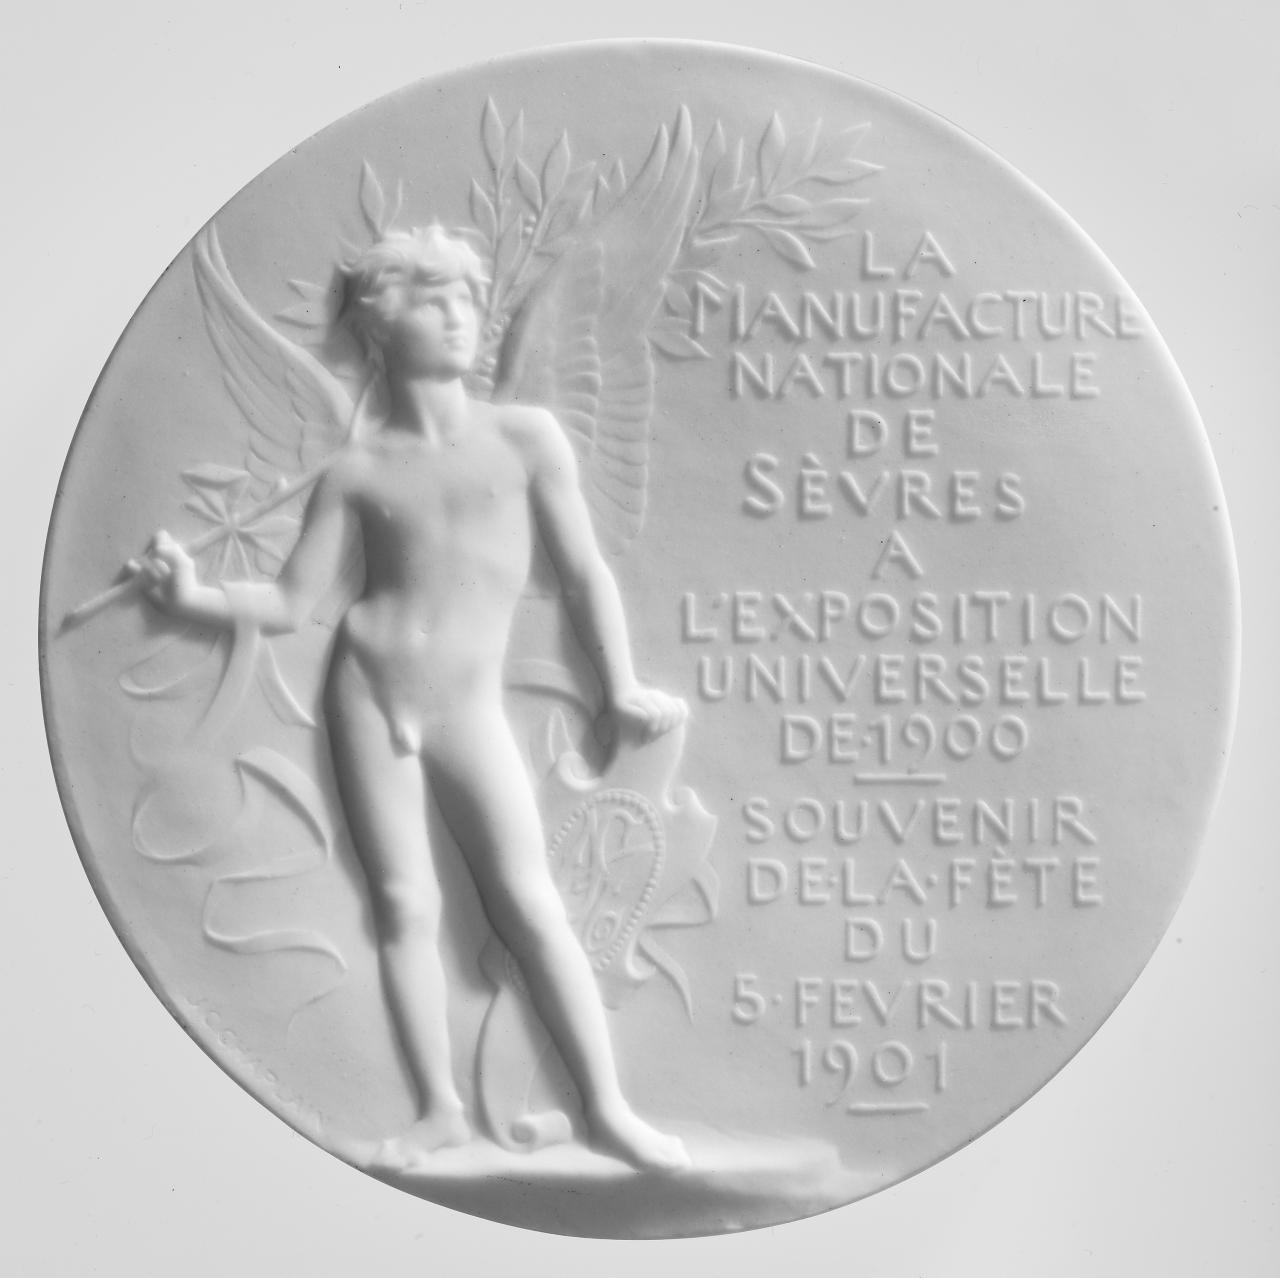 Sèvres Porcelain Factory at the Universal Exposition of 1900. Souvenir of the fair on 5 February 1901, commemorative plaque